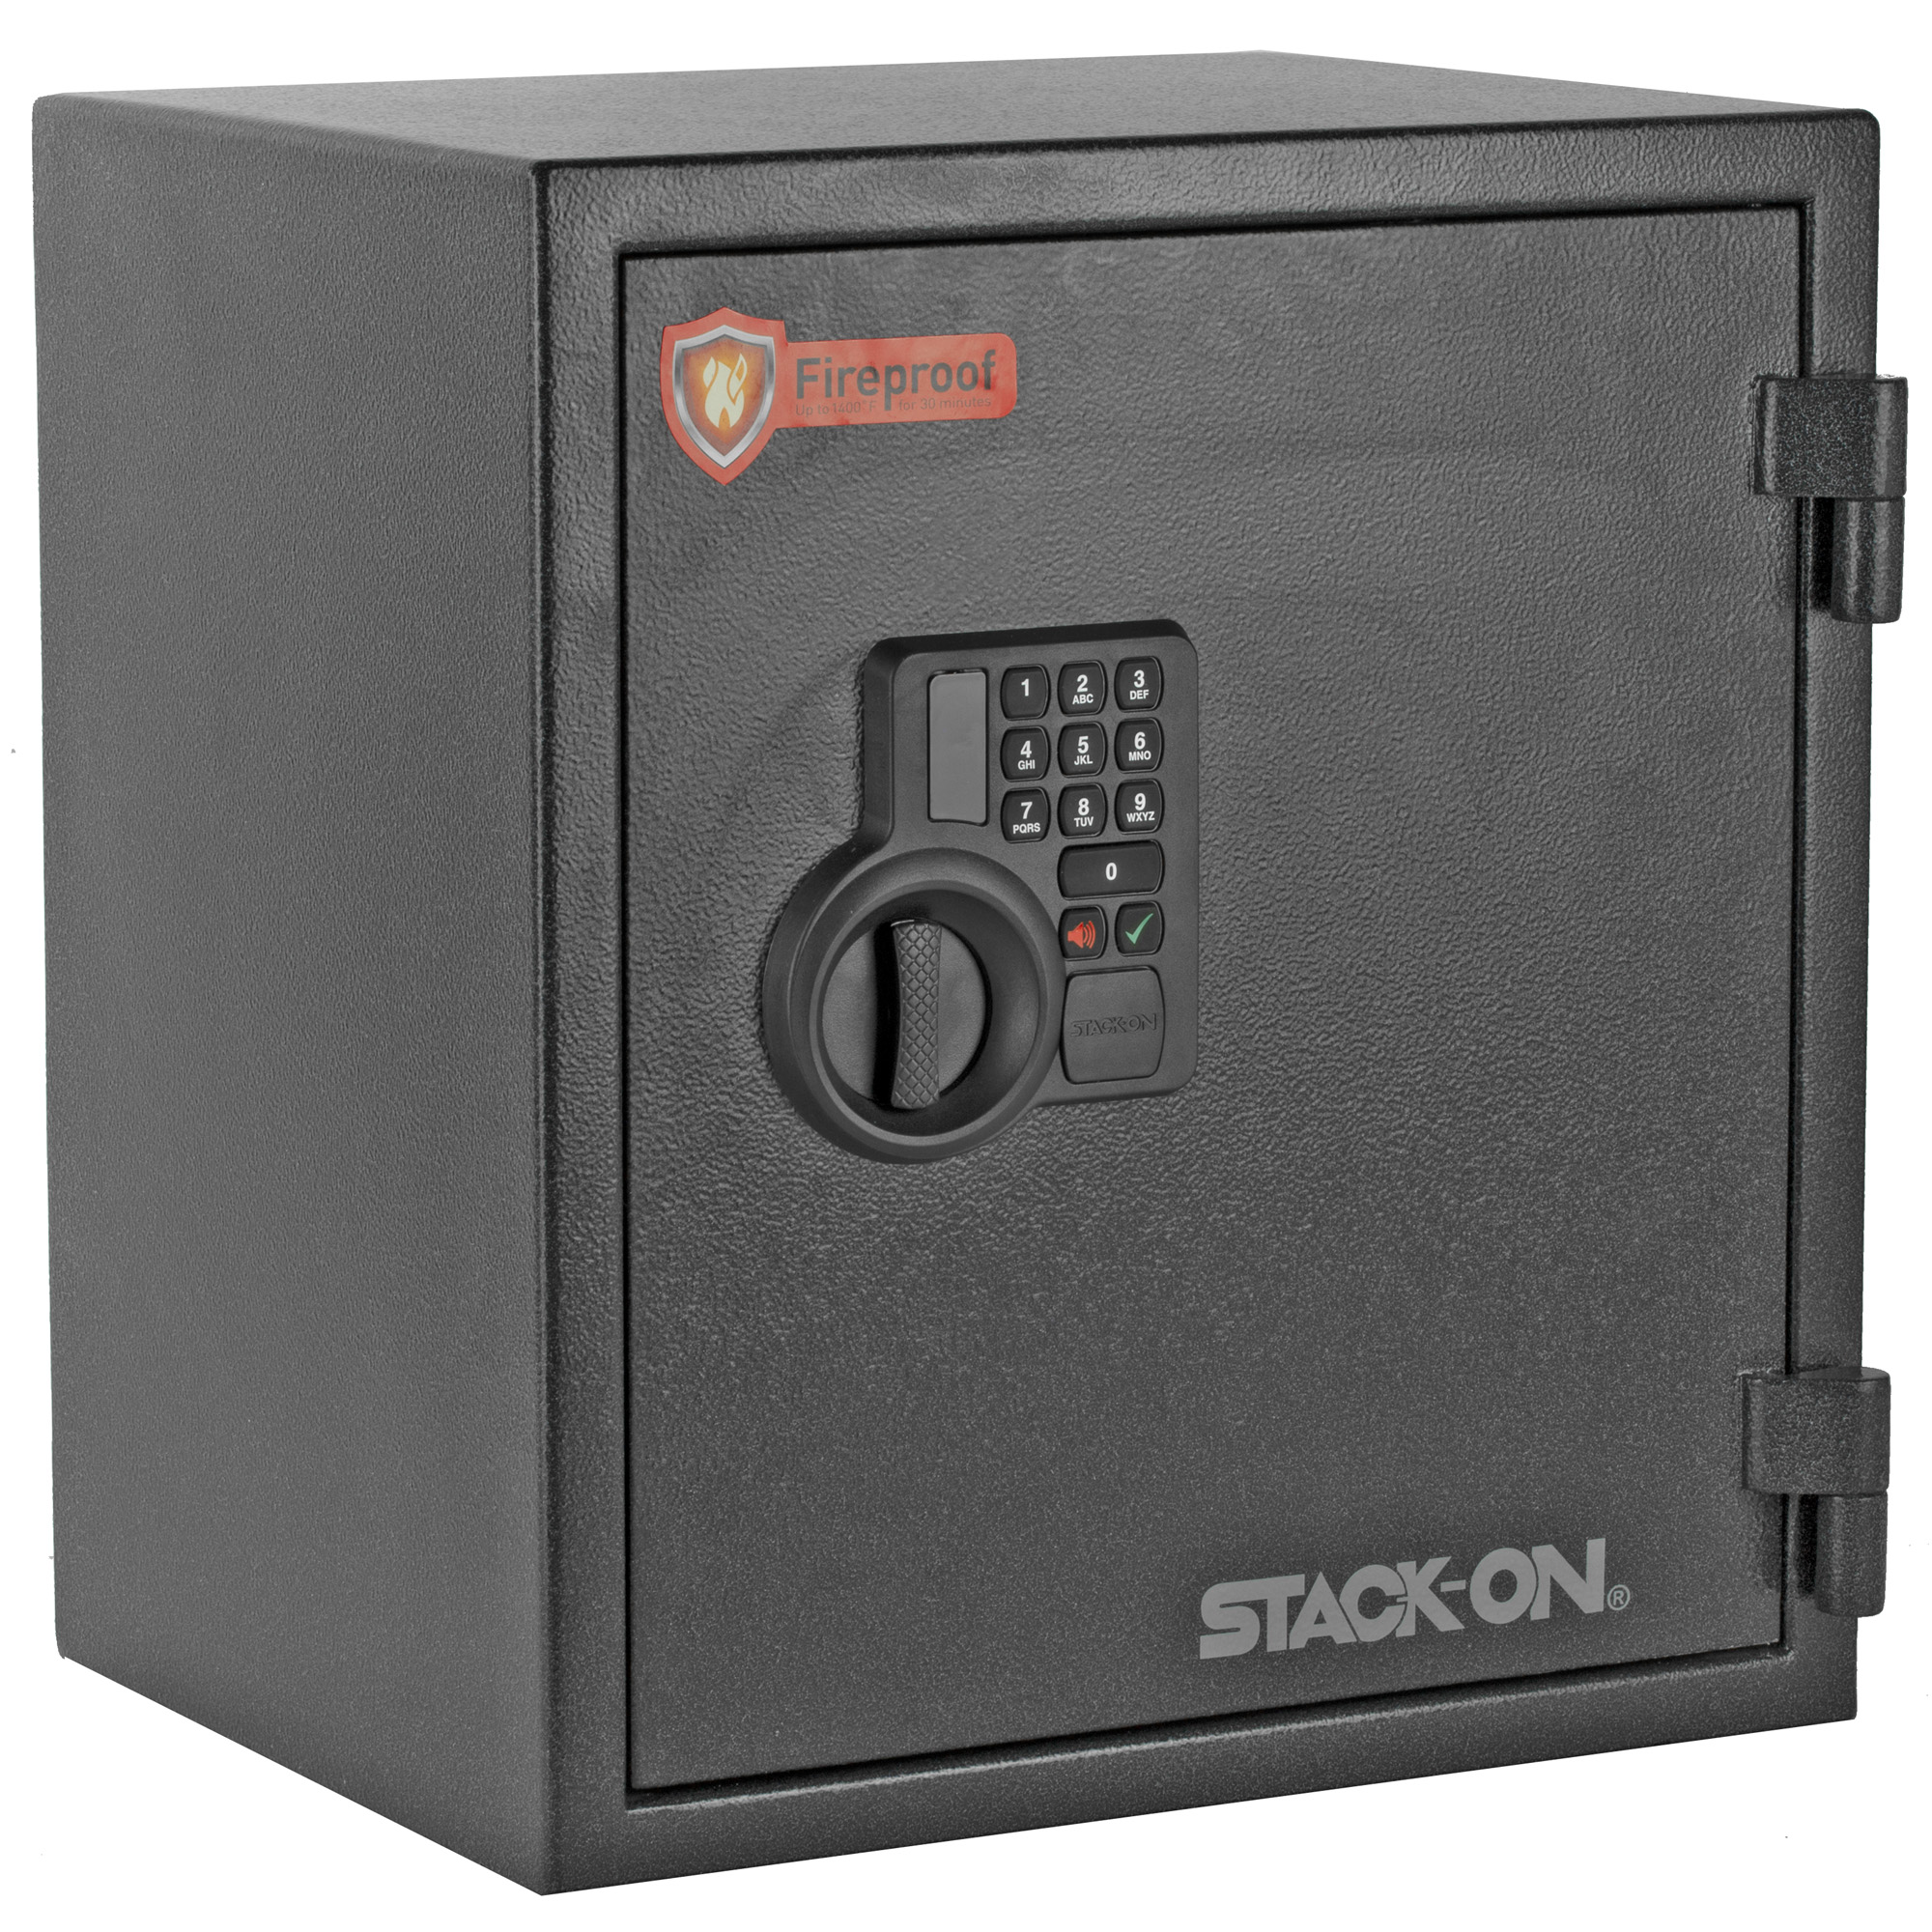 """This medium fireproof personal safe features all-steel welded construction to provide protection that goes far beyond that of similarly priced safes. The electronic lock allows you to program a personalized 3-8 digit combination"""" has a low battery warning system"""" and includes a backup key."""